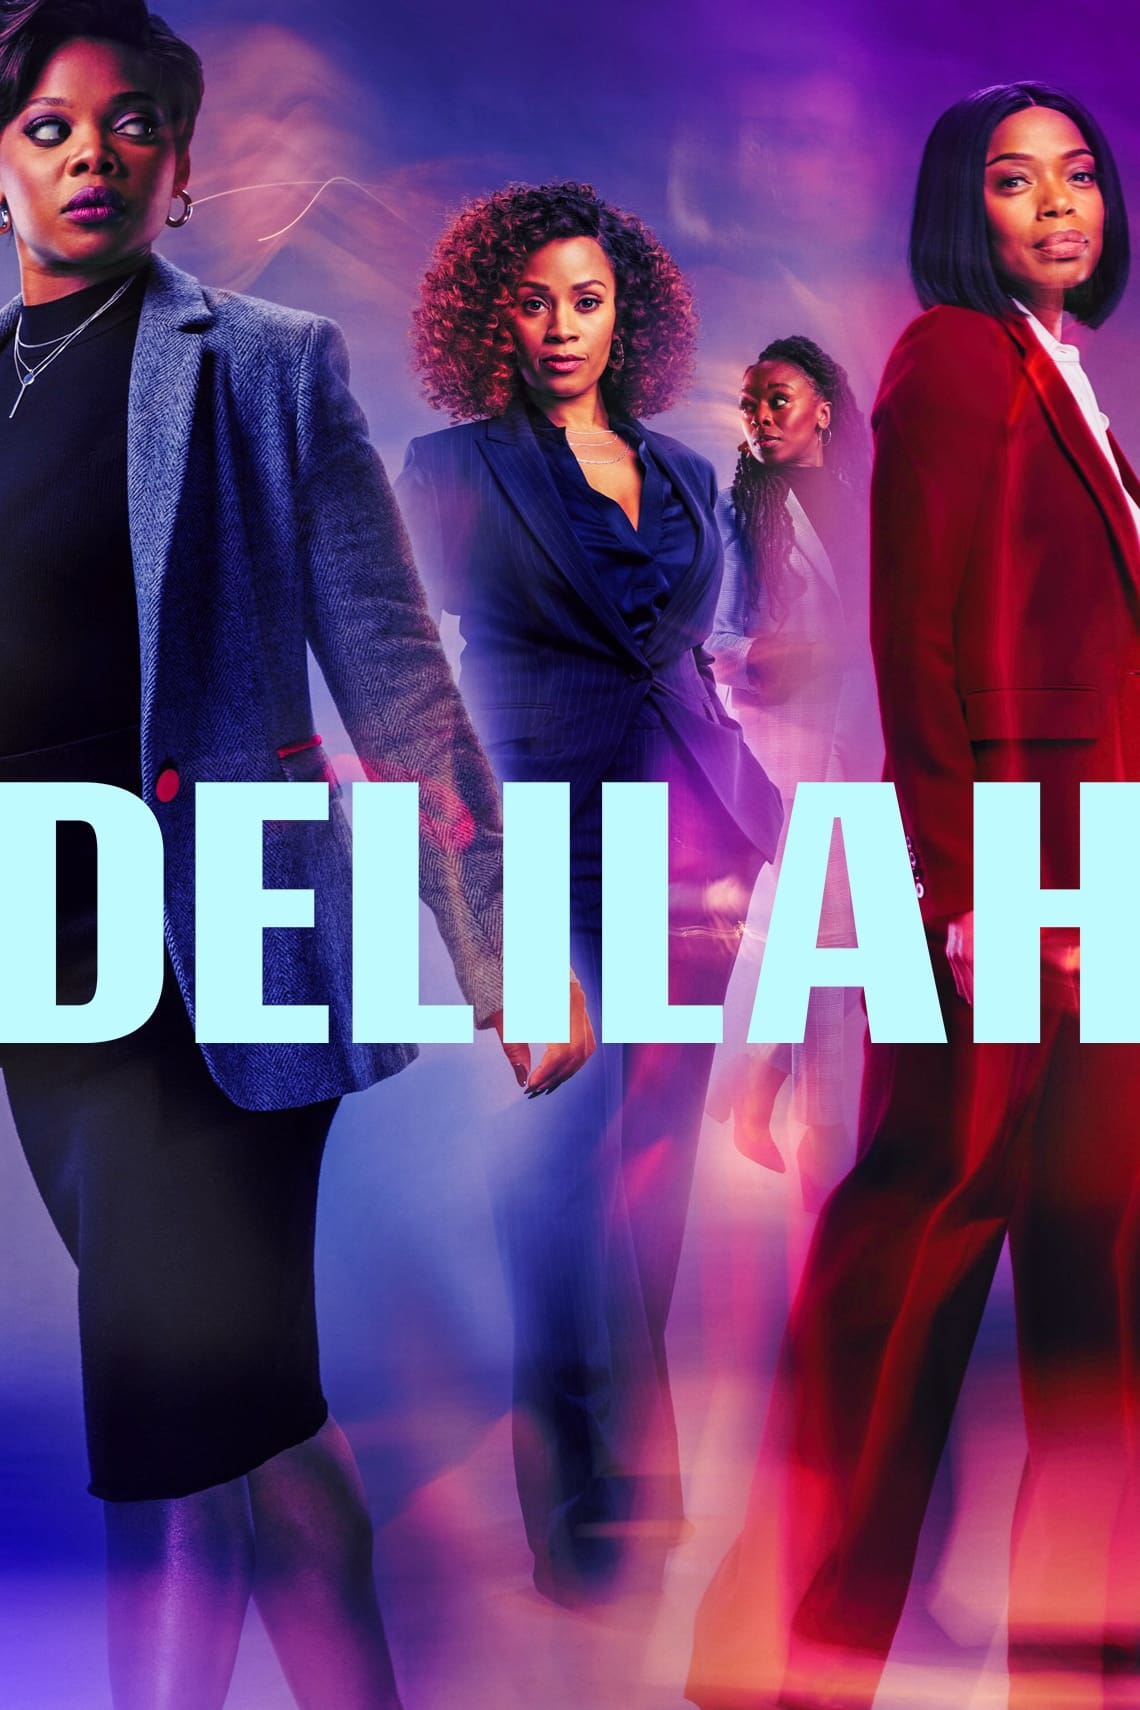 Delilah TV Shows About Lawyer